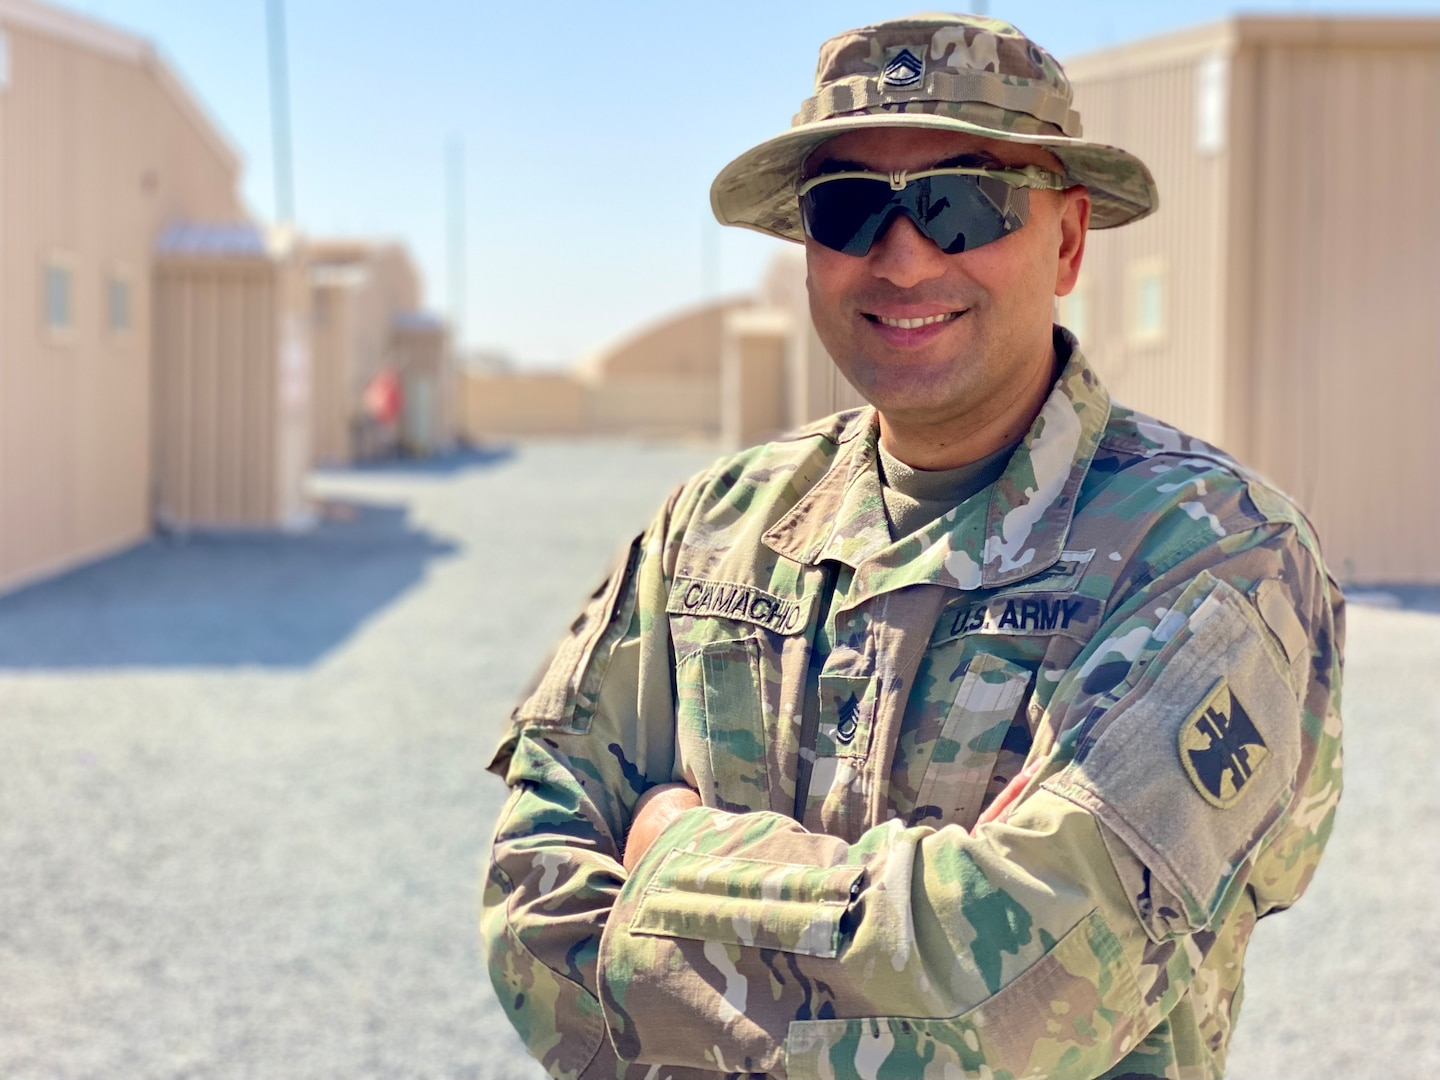 The 111th Theater Engineer Brigade is excited to recognize a Hispanic-American Soldier who serves in our ranks and is a prime example of one who embodies the DoD and Army values.   Sgt. 1st Class Glilberto Camacho is a Soldier in the 604th FEST-A, 111th Engineer Brigade who is proud of where he came from and celebrates his heritage every day.